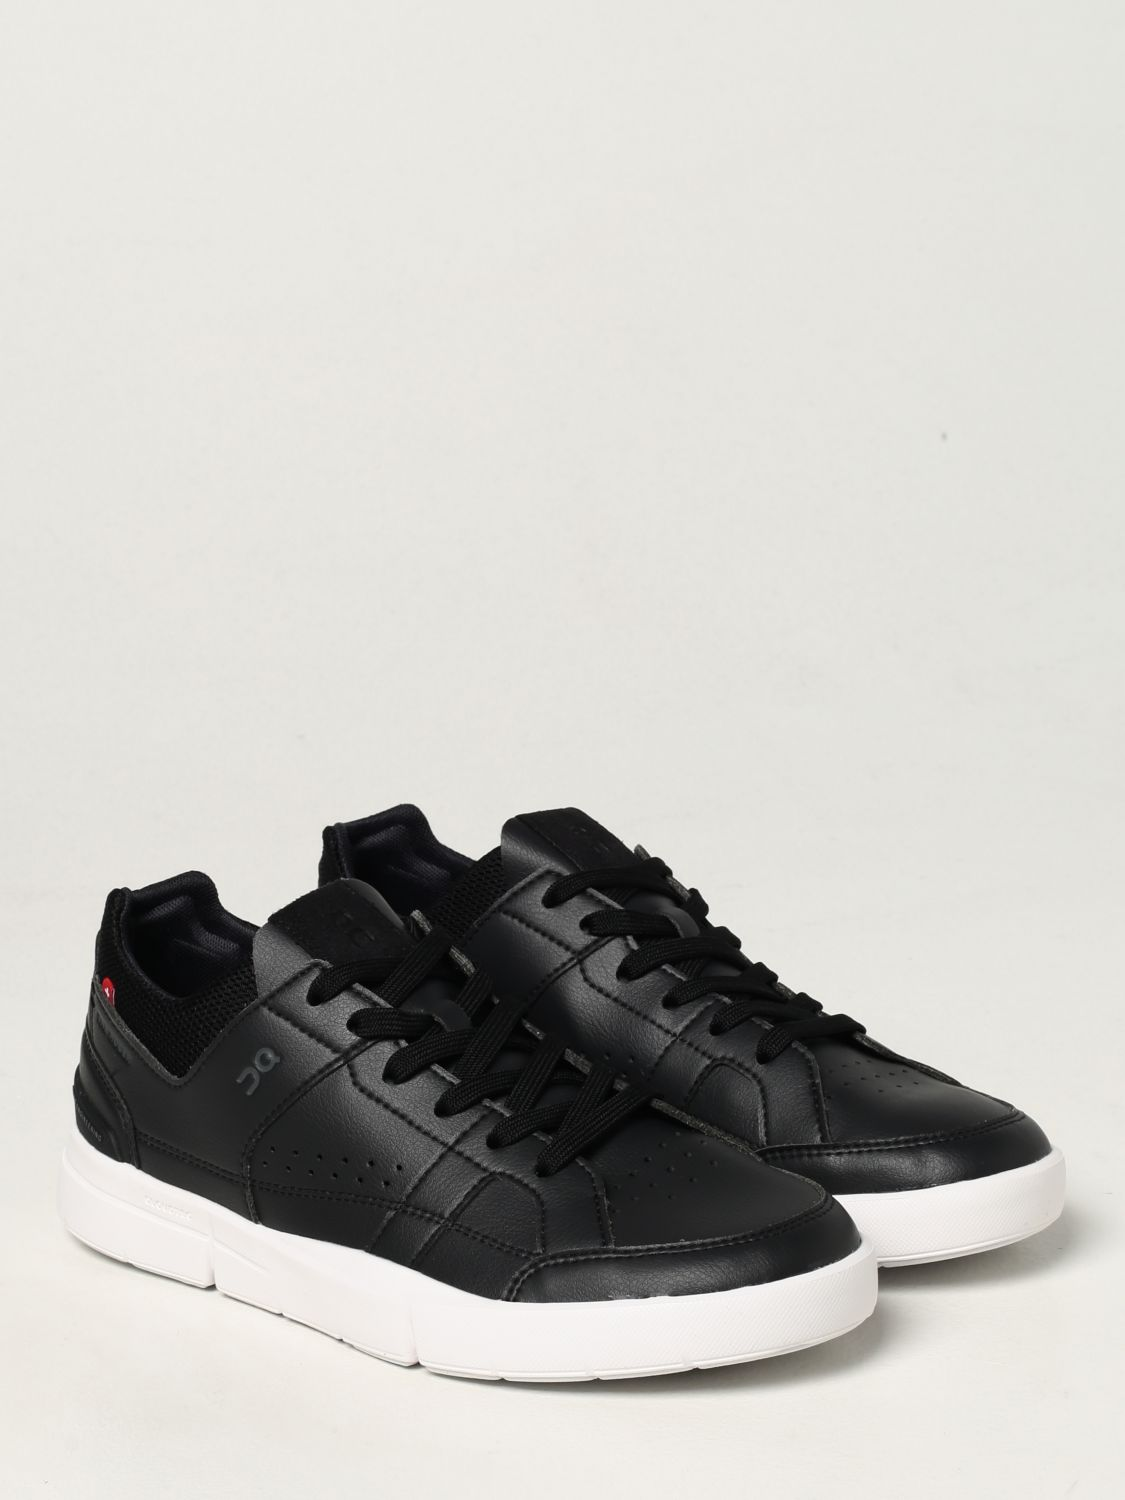 Sneakers The Roger: Sneakers Clubhouse in pelle ecologica e mesh nero 2